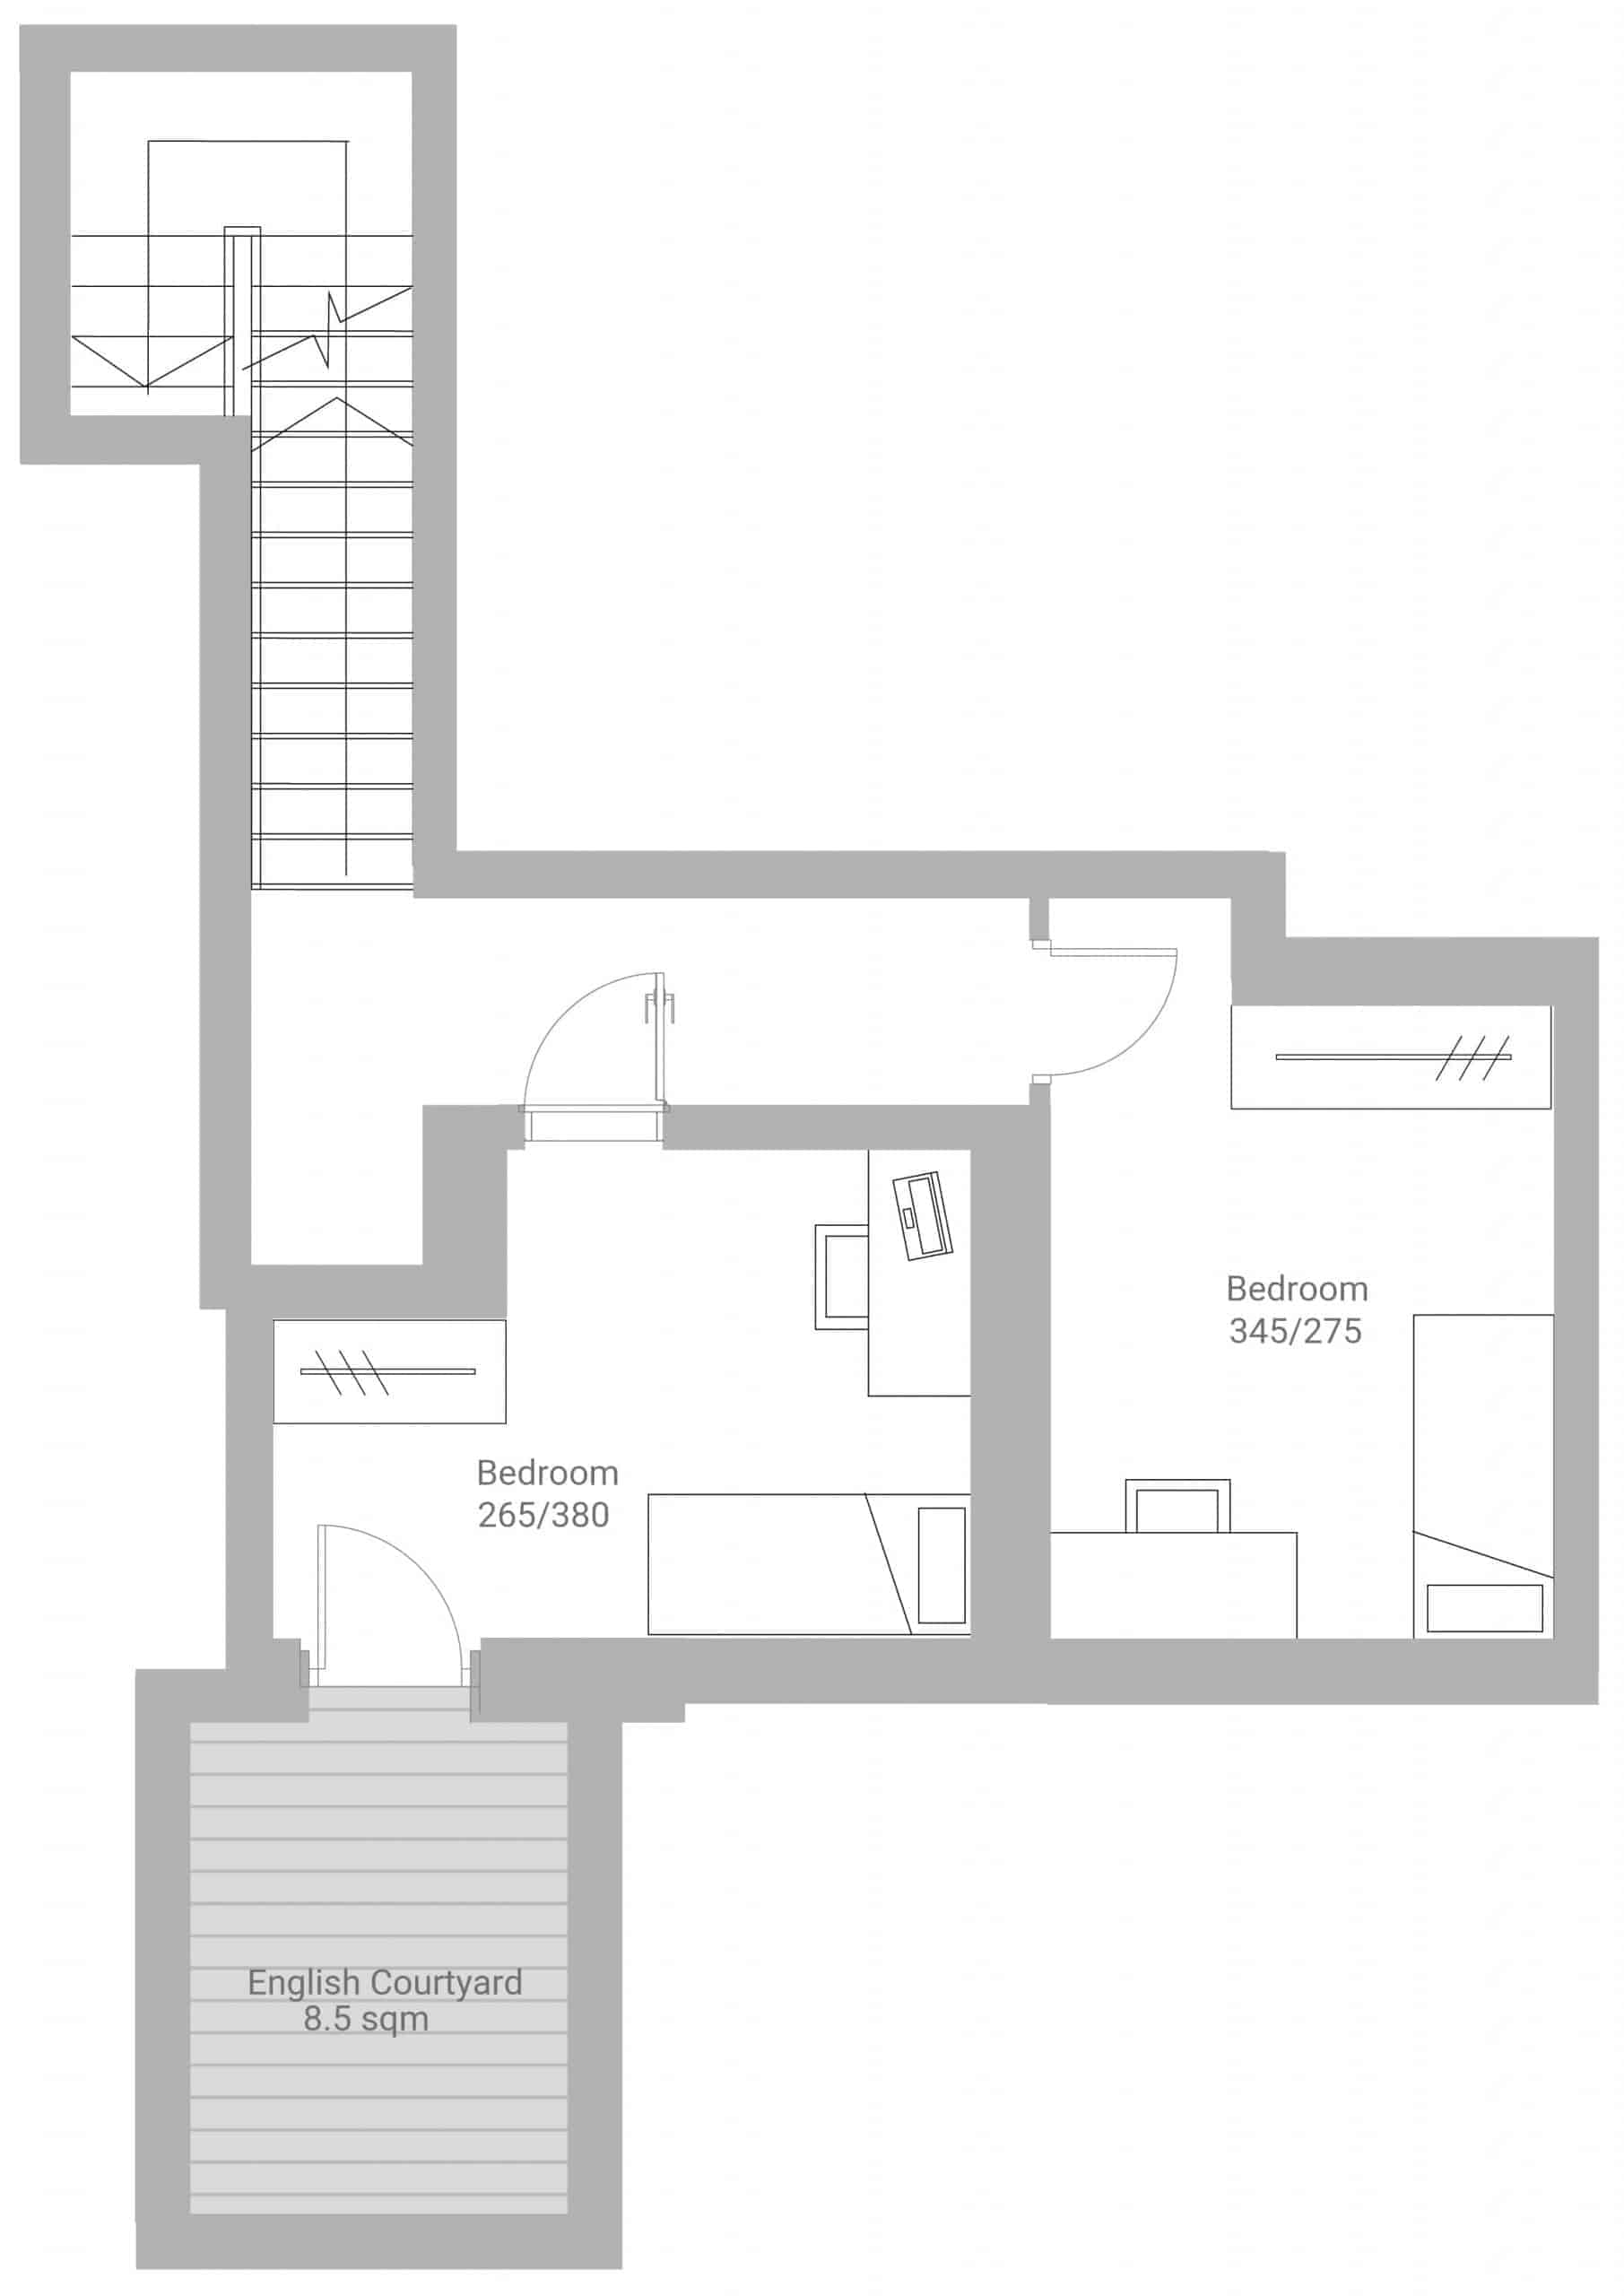 3046-triplex-E1-lowerLevel-scaled.jpg